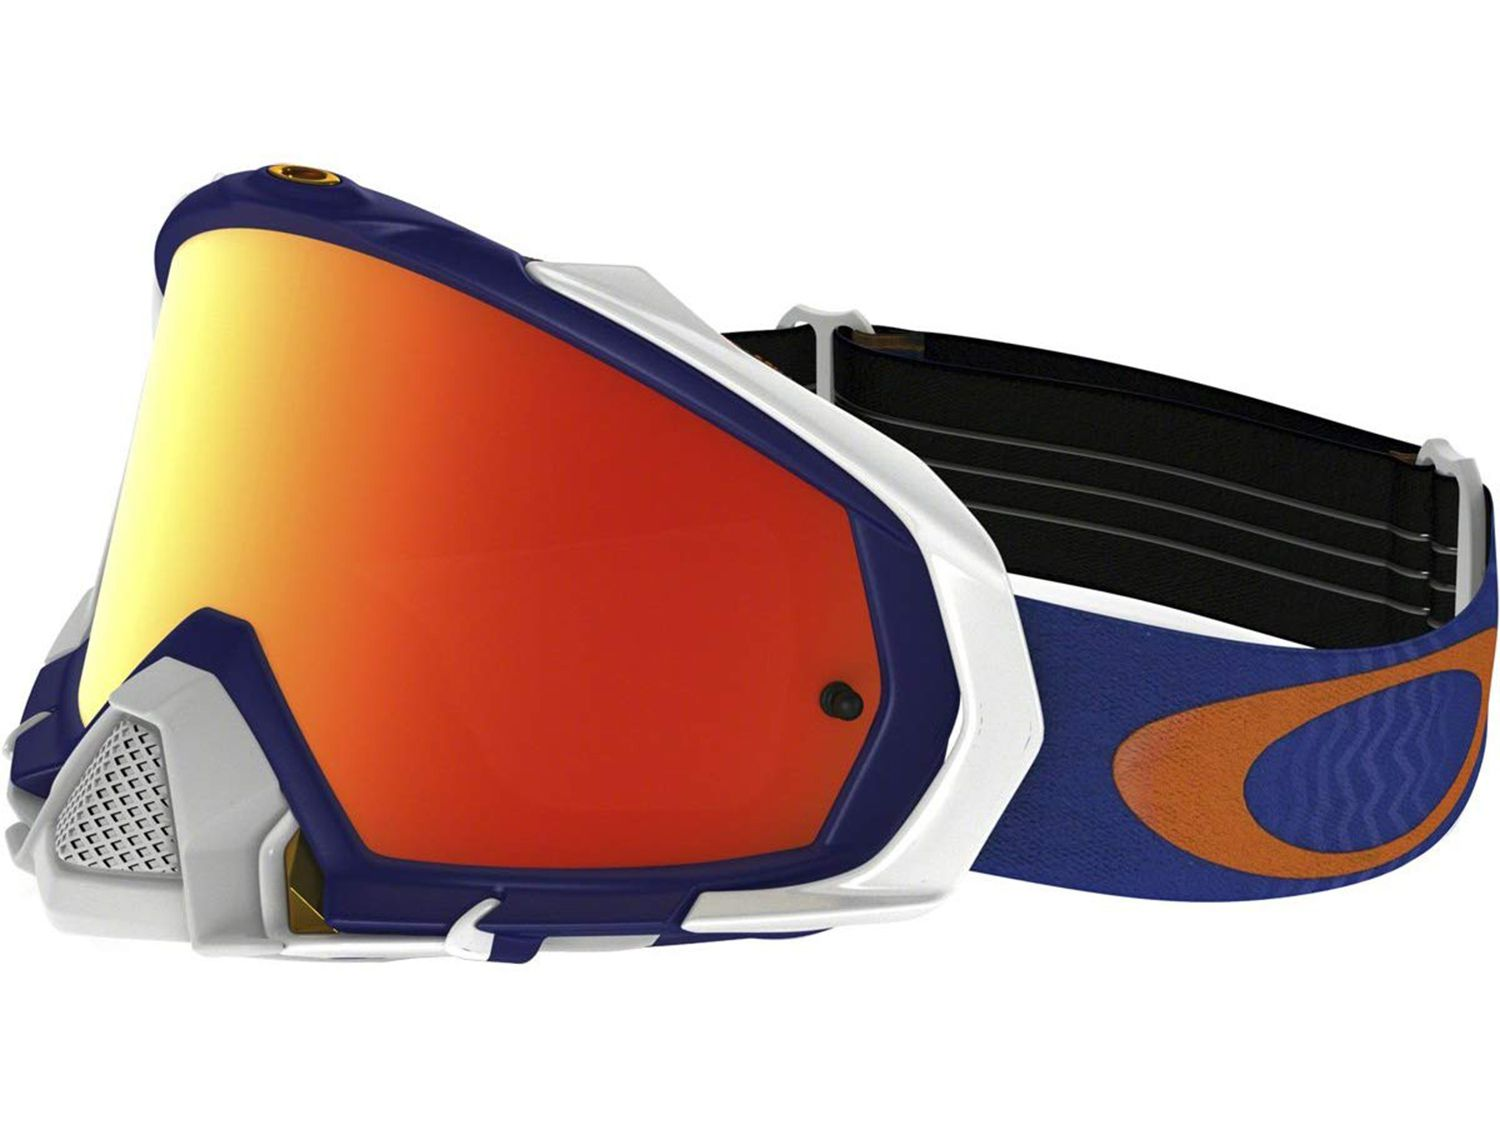 The Oakley Mayhem Pro MX is just one of many ultra-cool versions you can get your hands on right now.